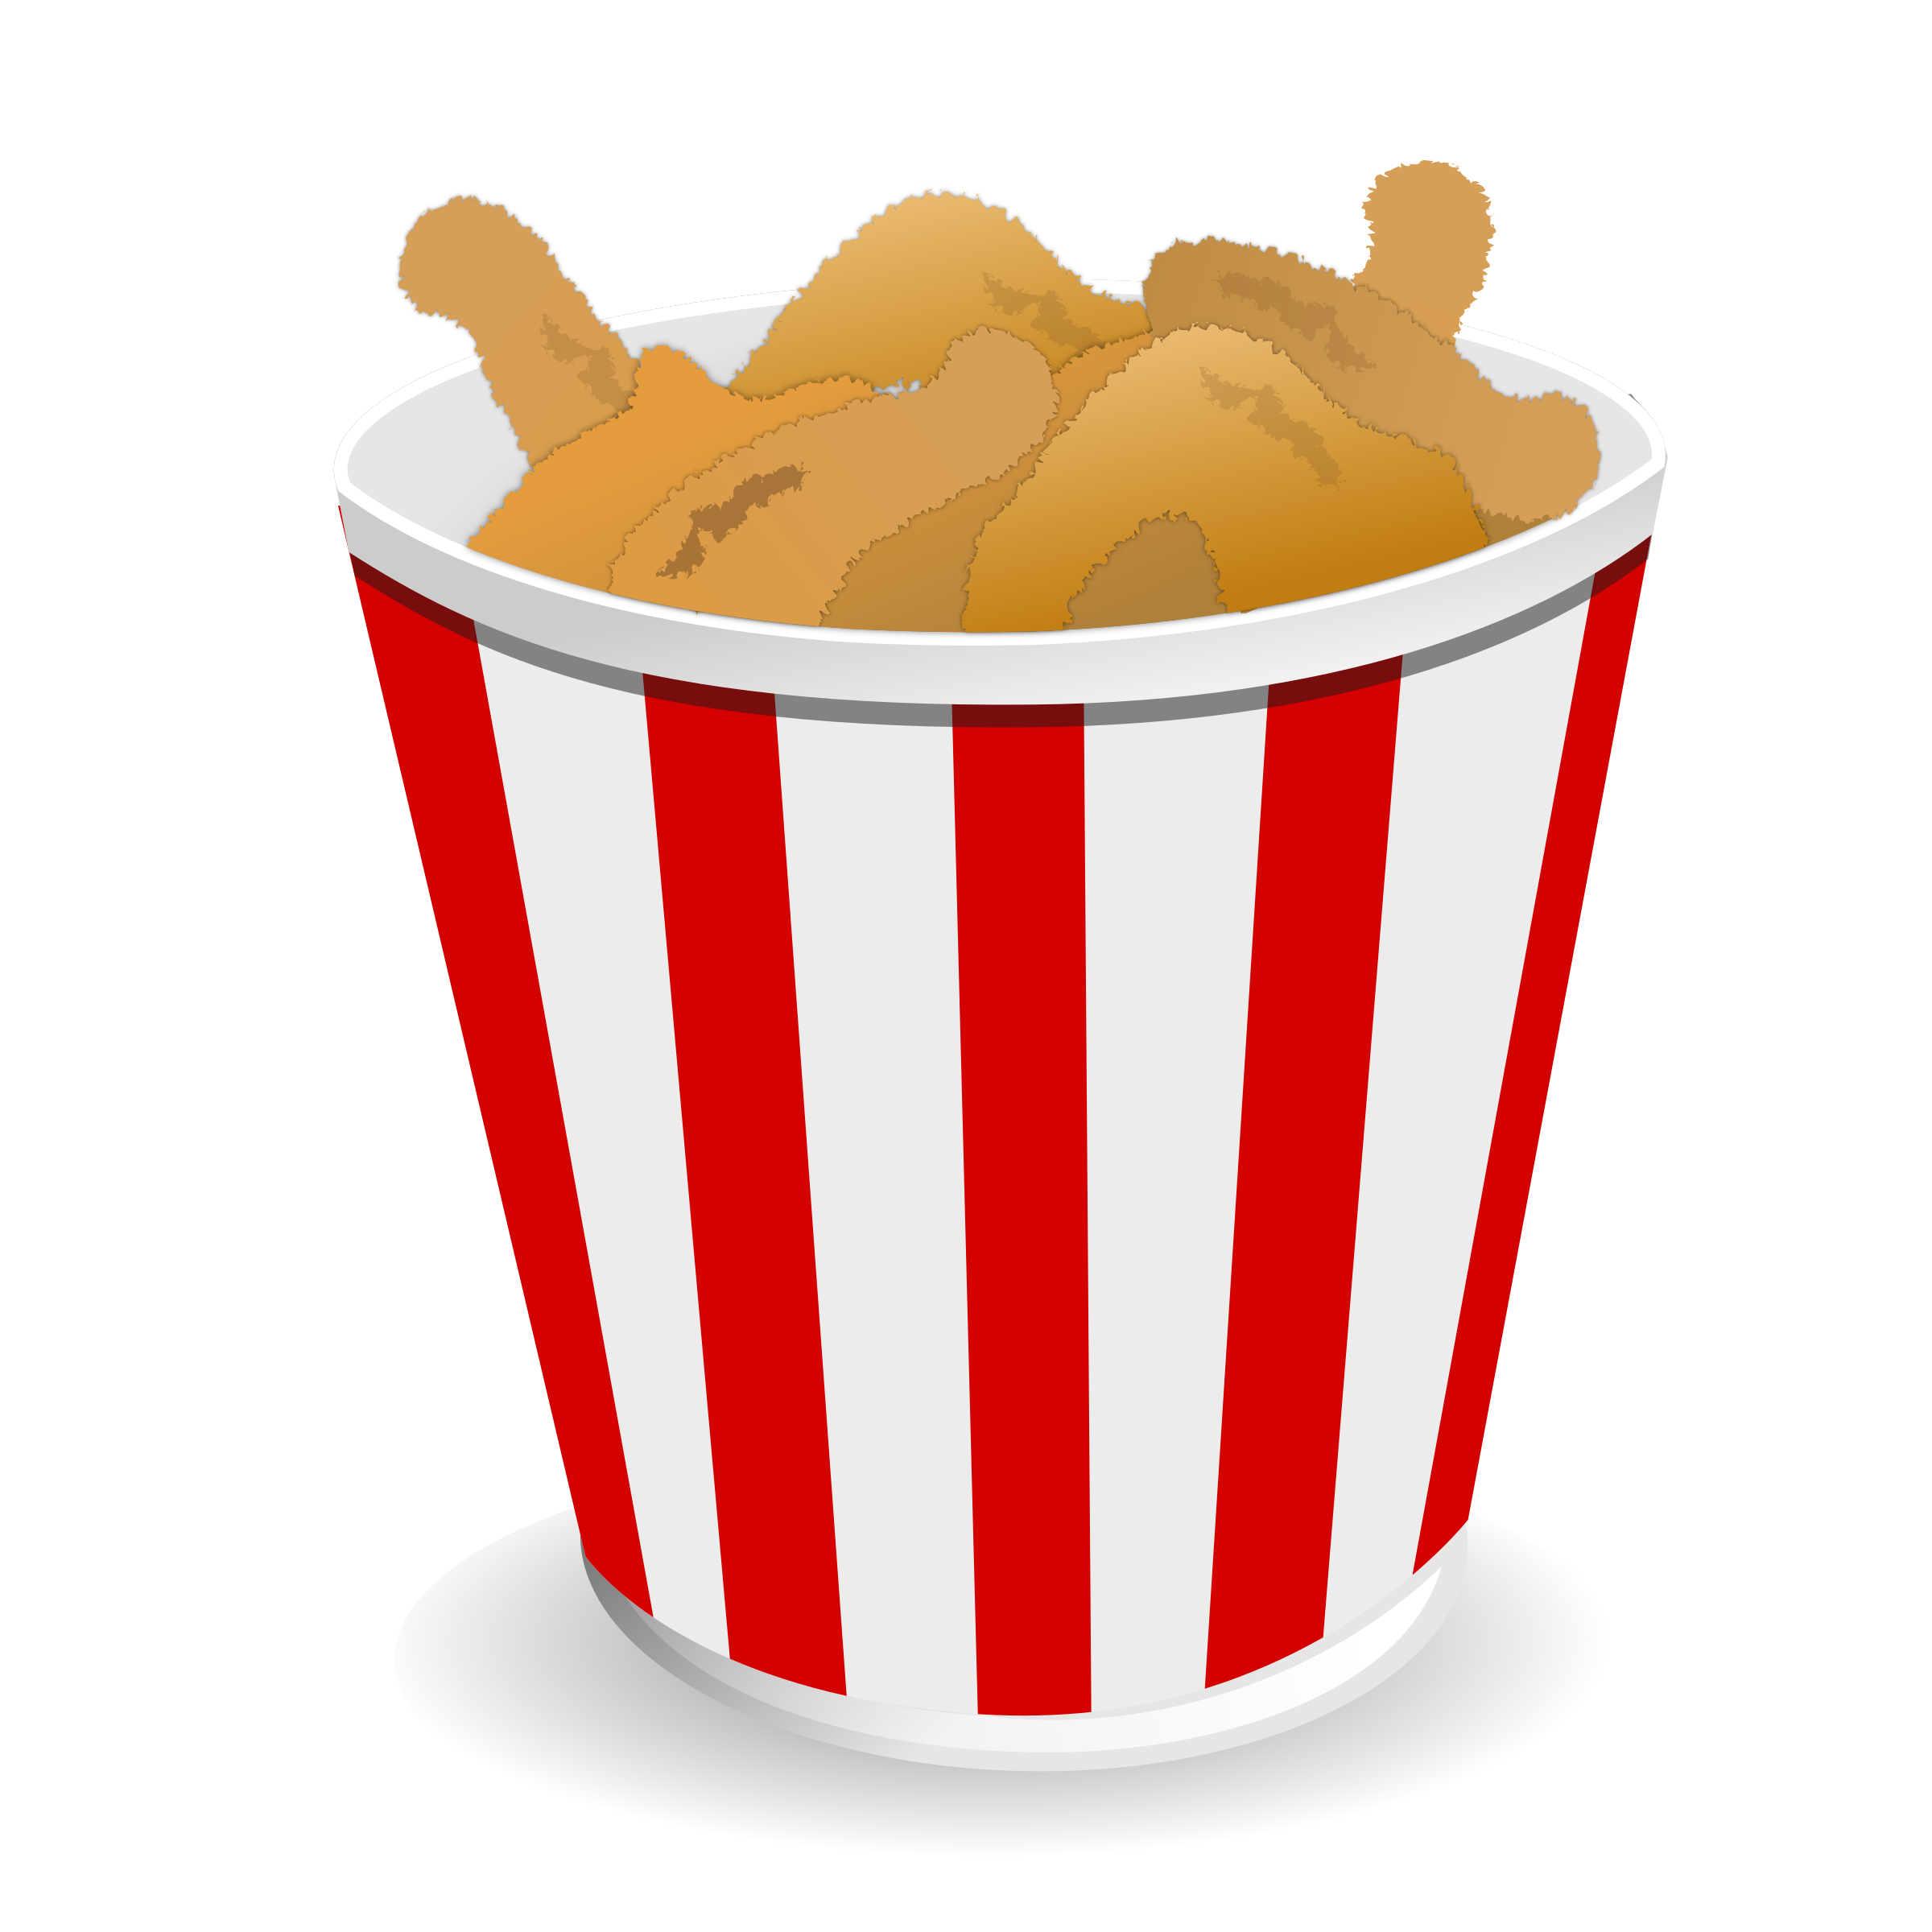 Chicken food at getdrawings. Wing clipart animated